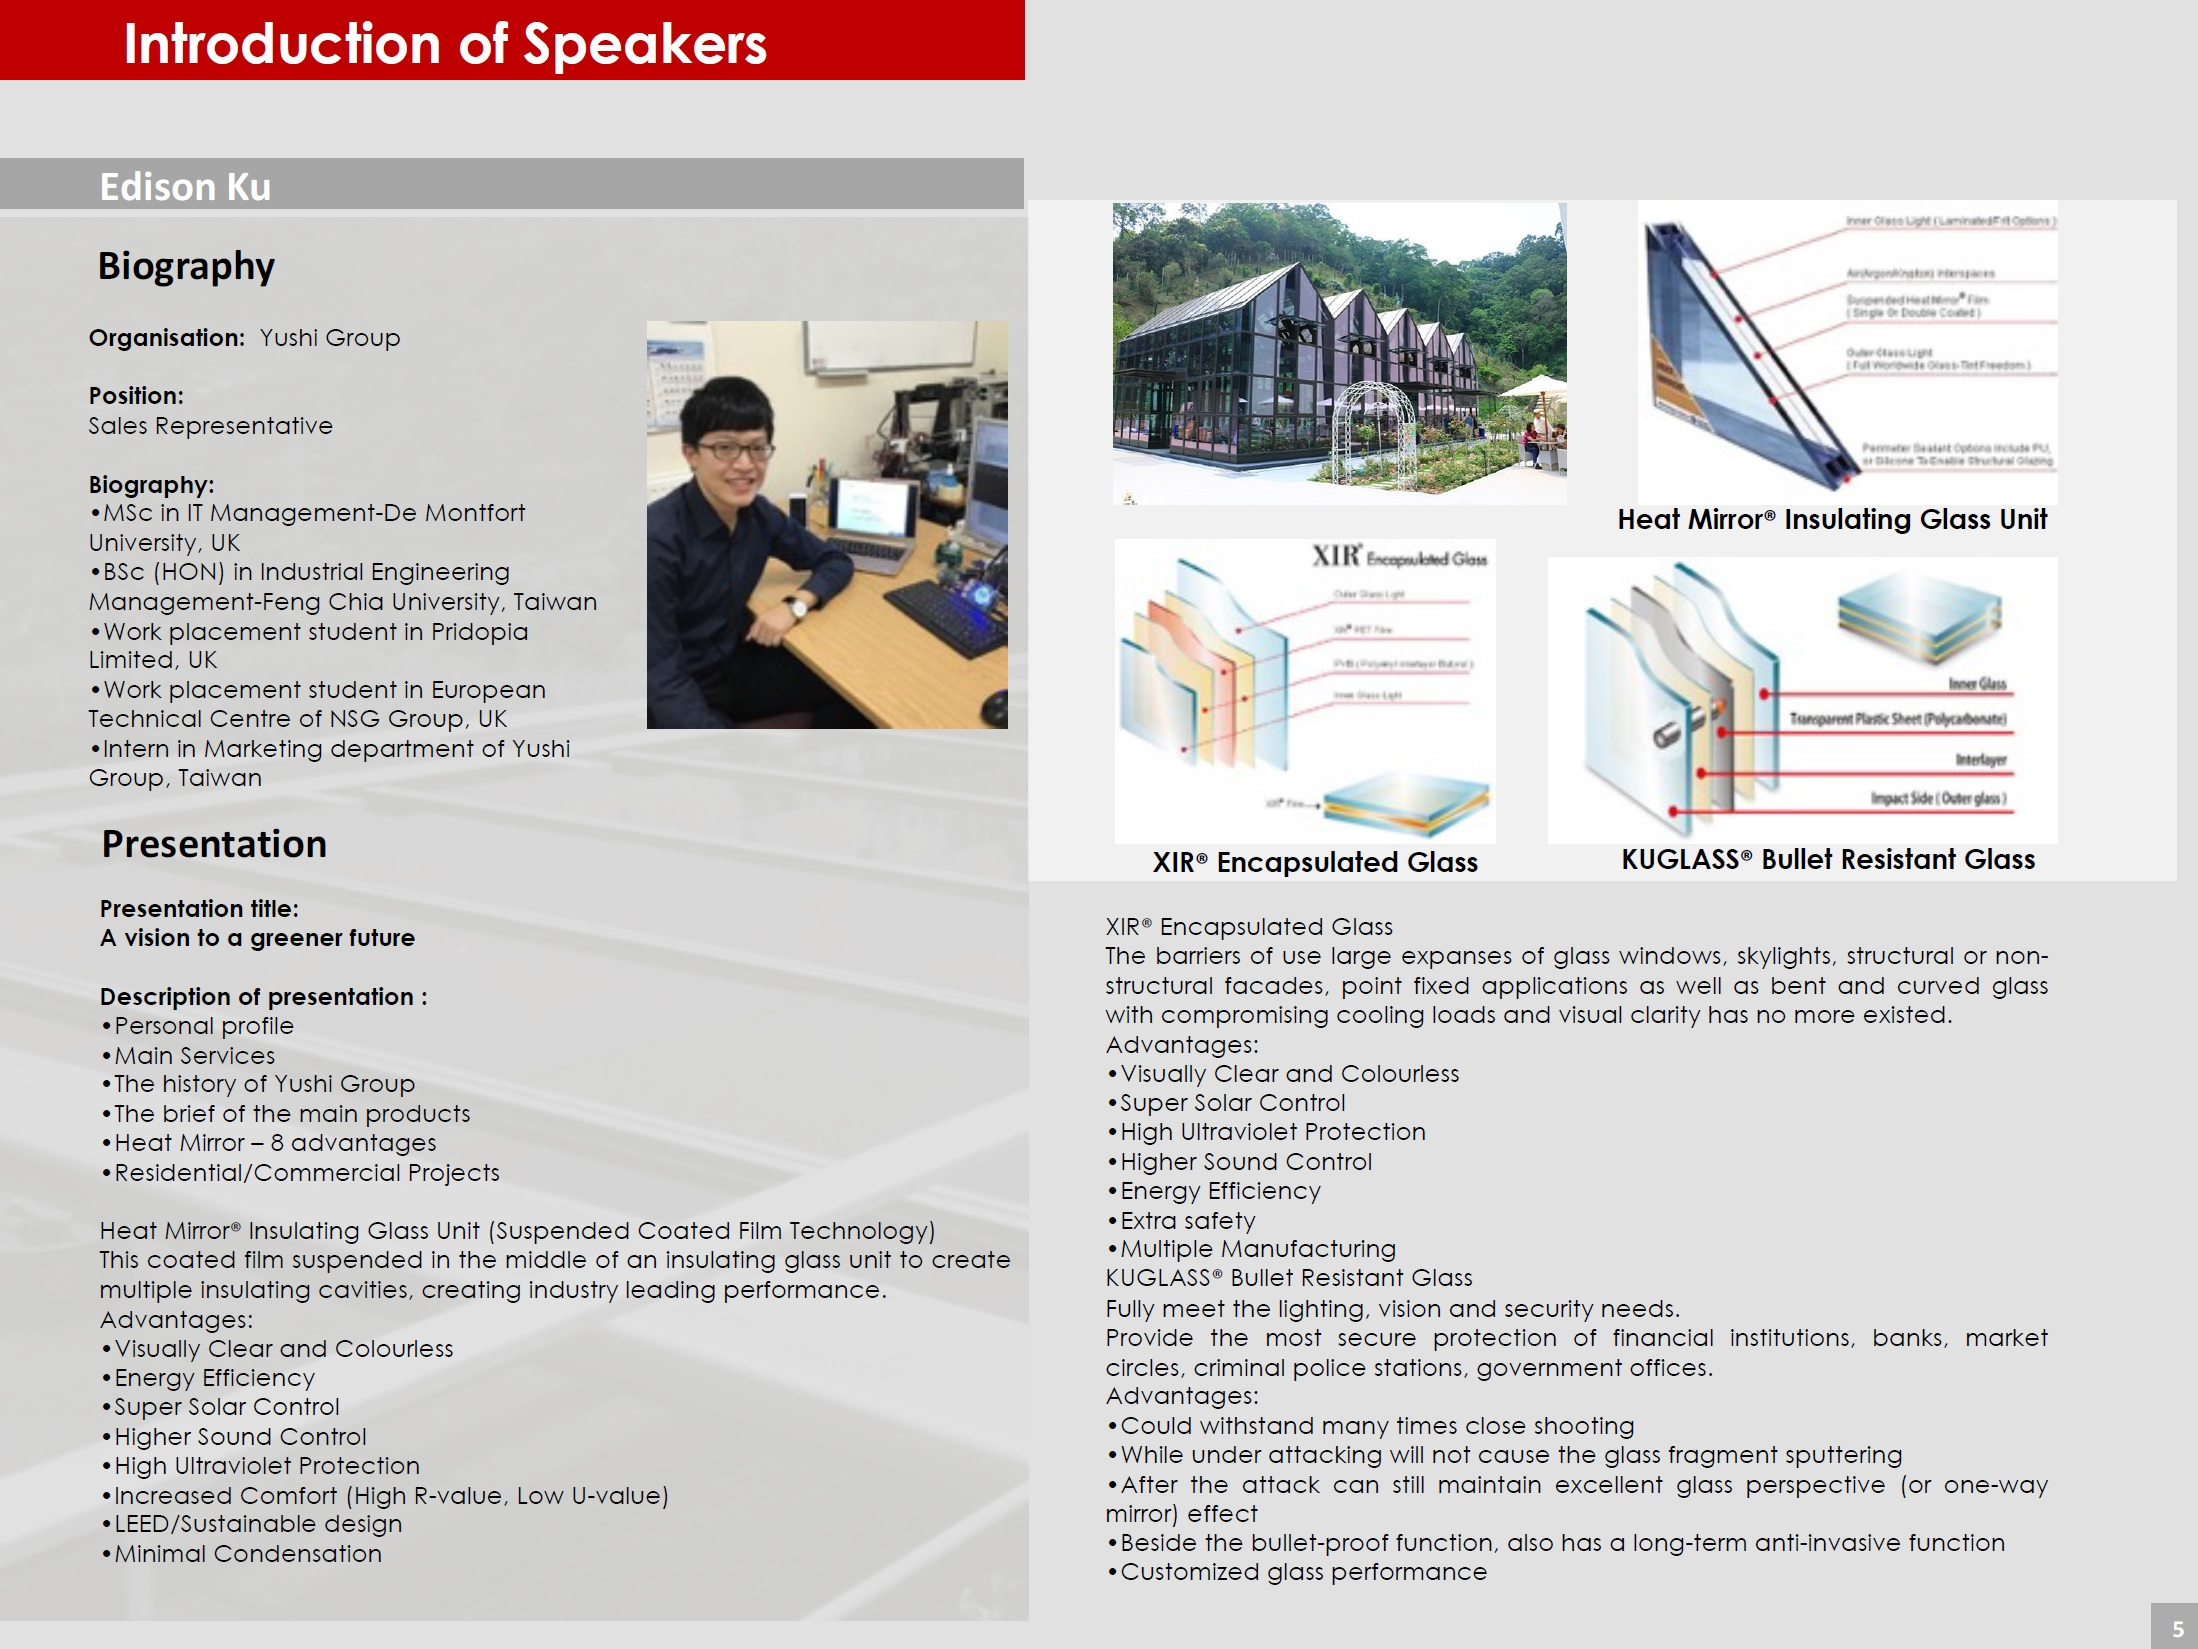 Page 5 (Introduction of Speakers)